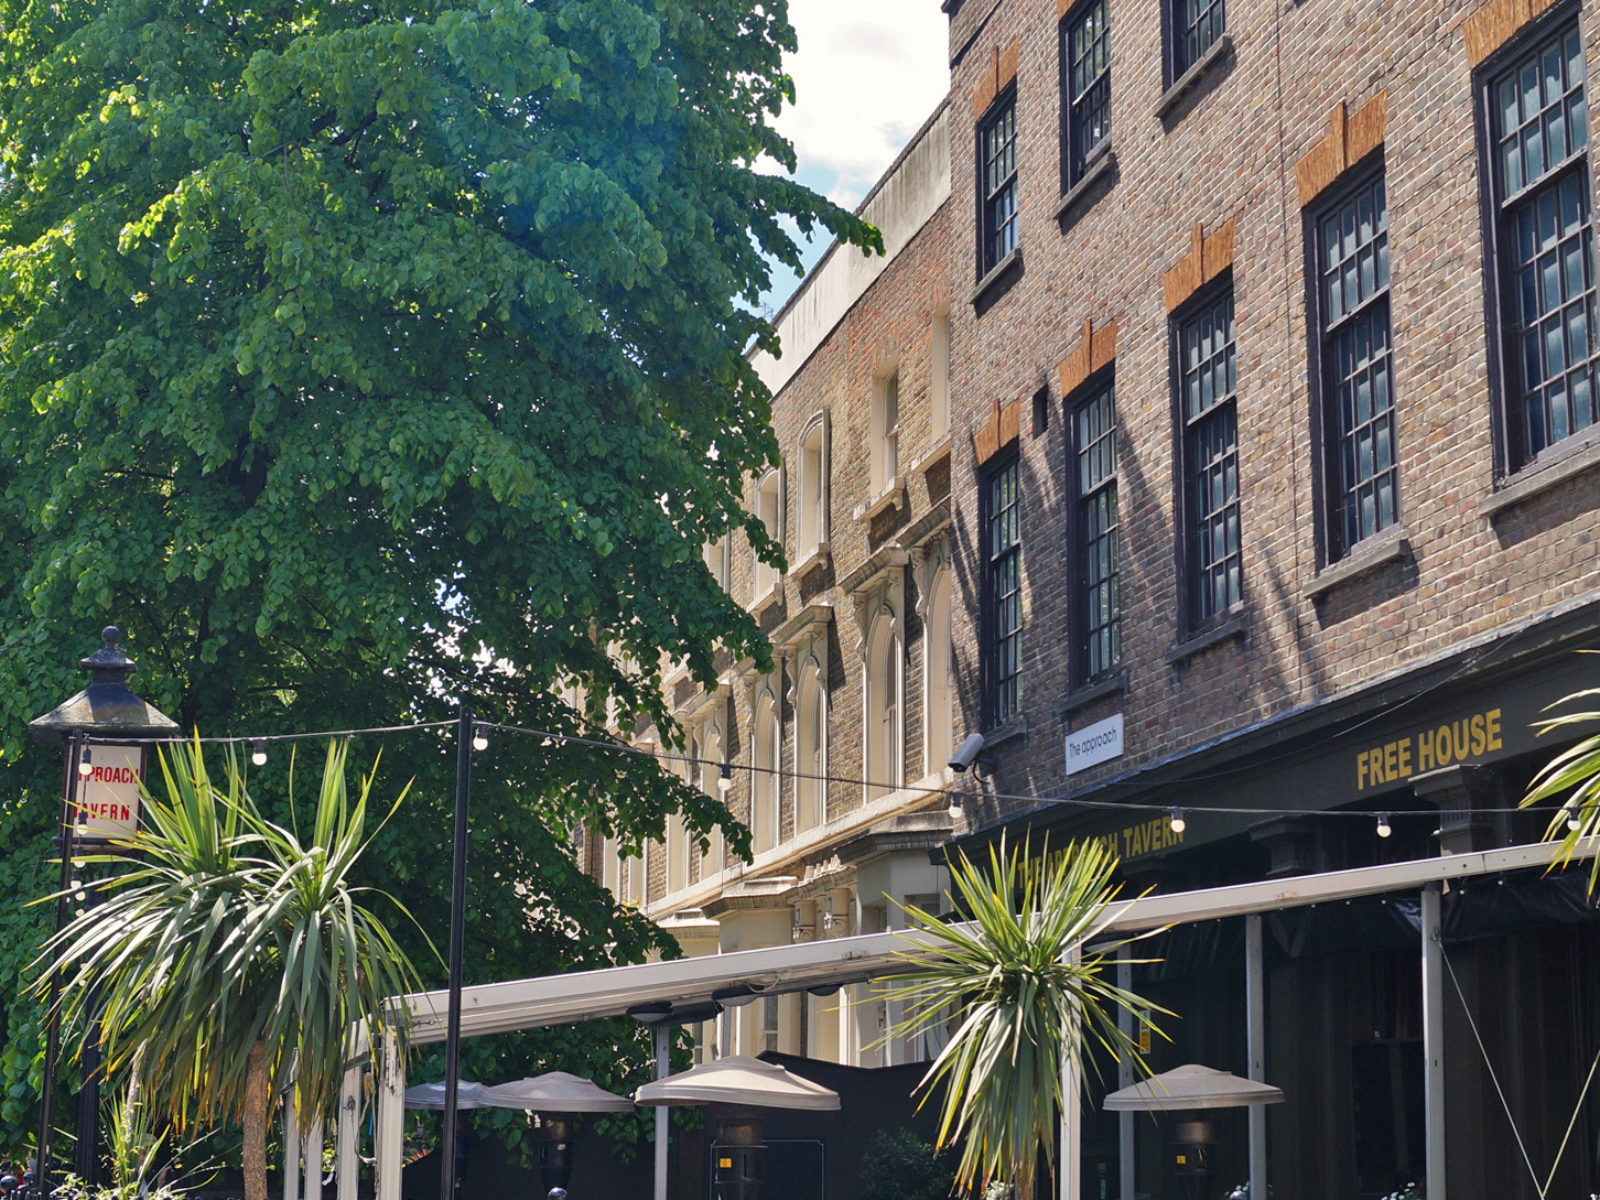 Have a refreshing pint in our wonderful beer garden under palm trees